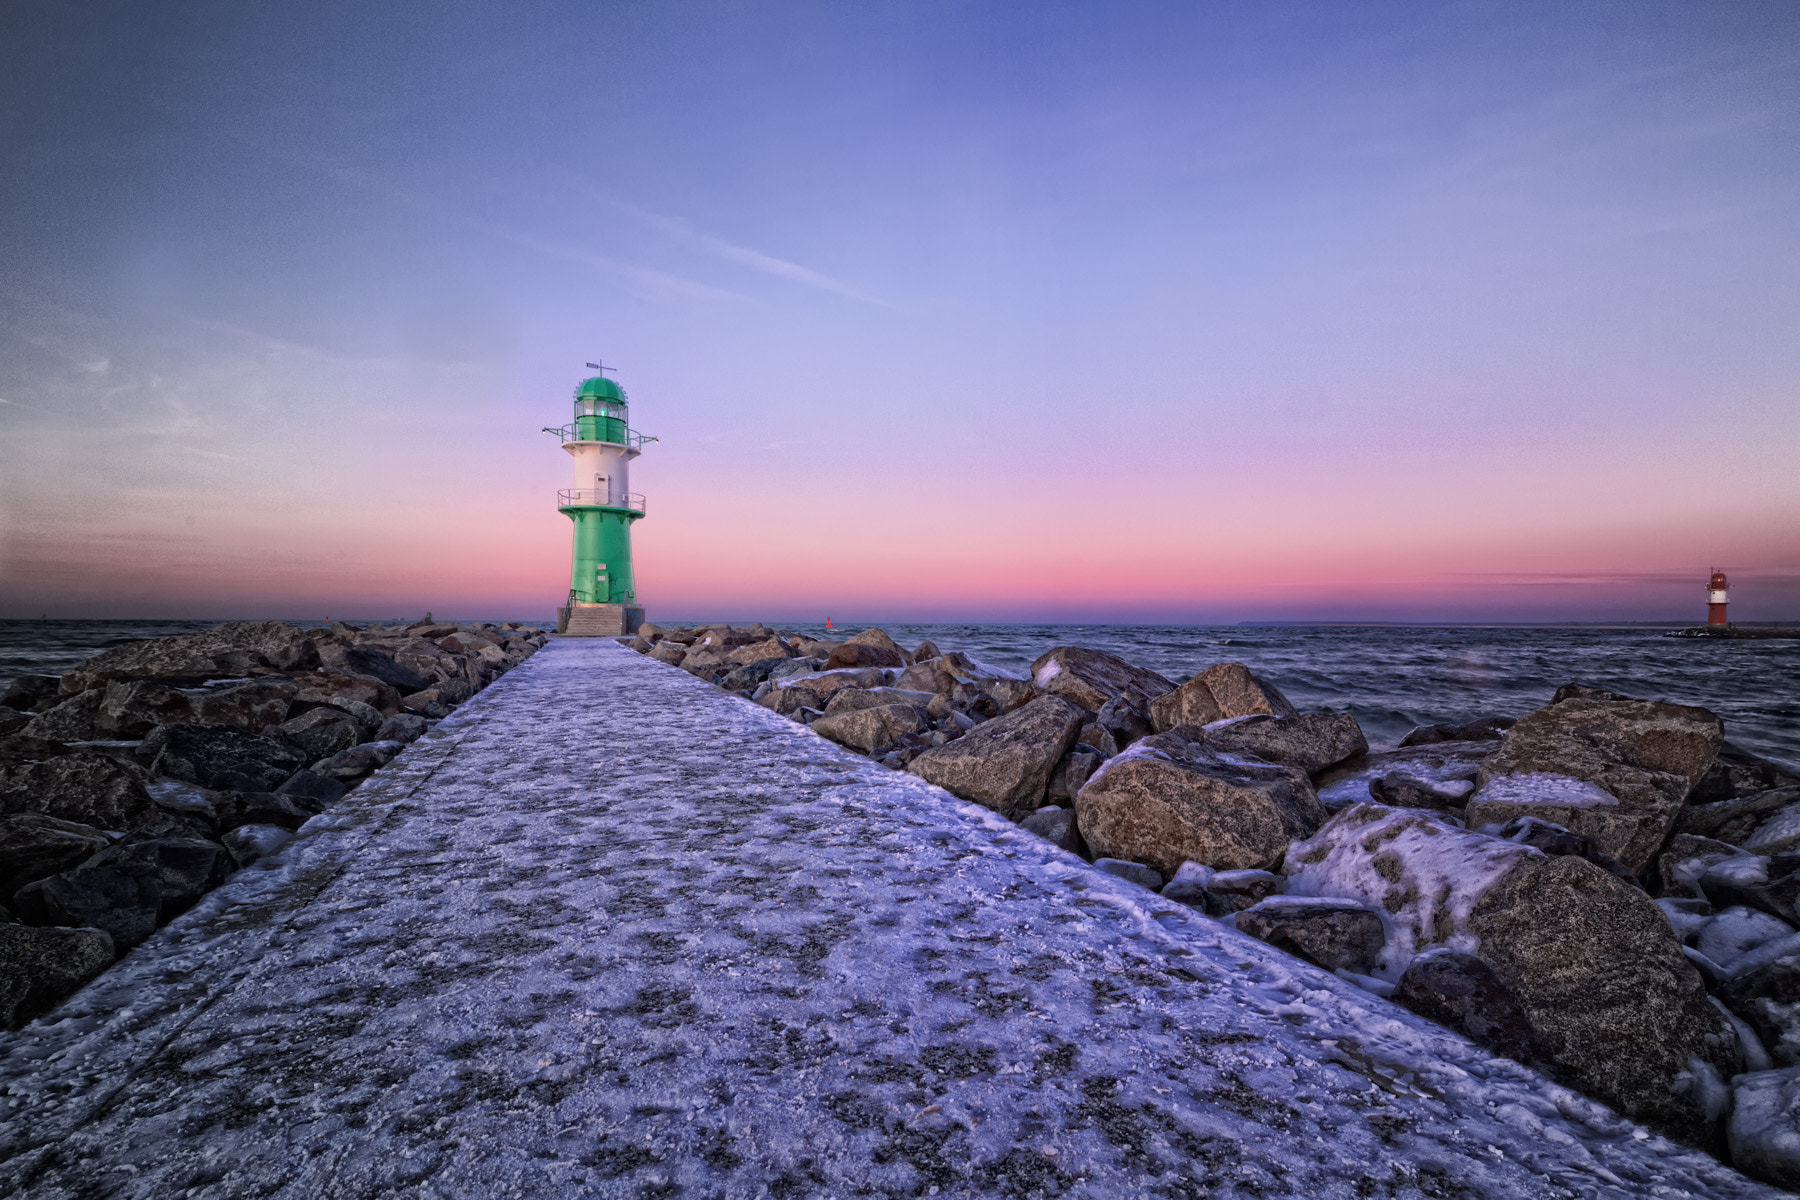 Photograph Lighthouse by Frank W. on 500px